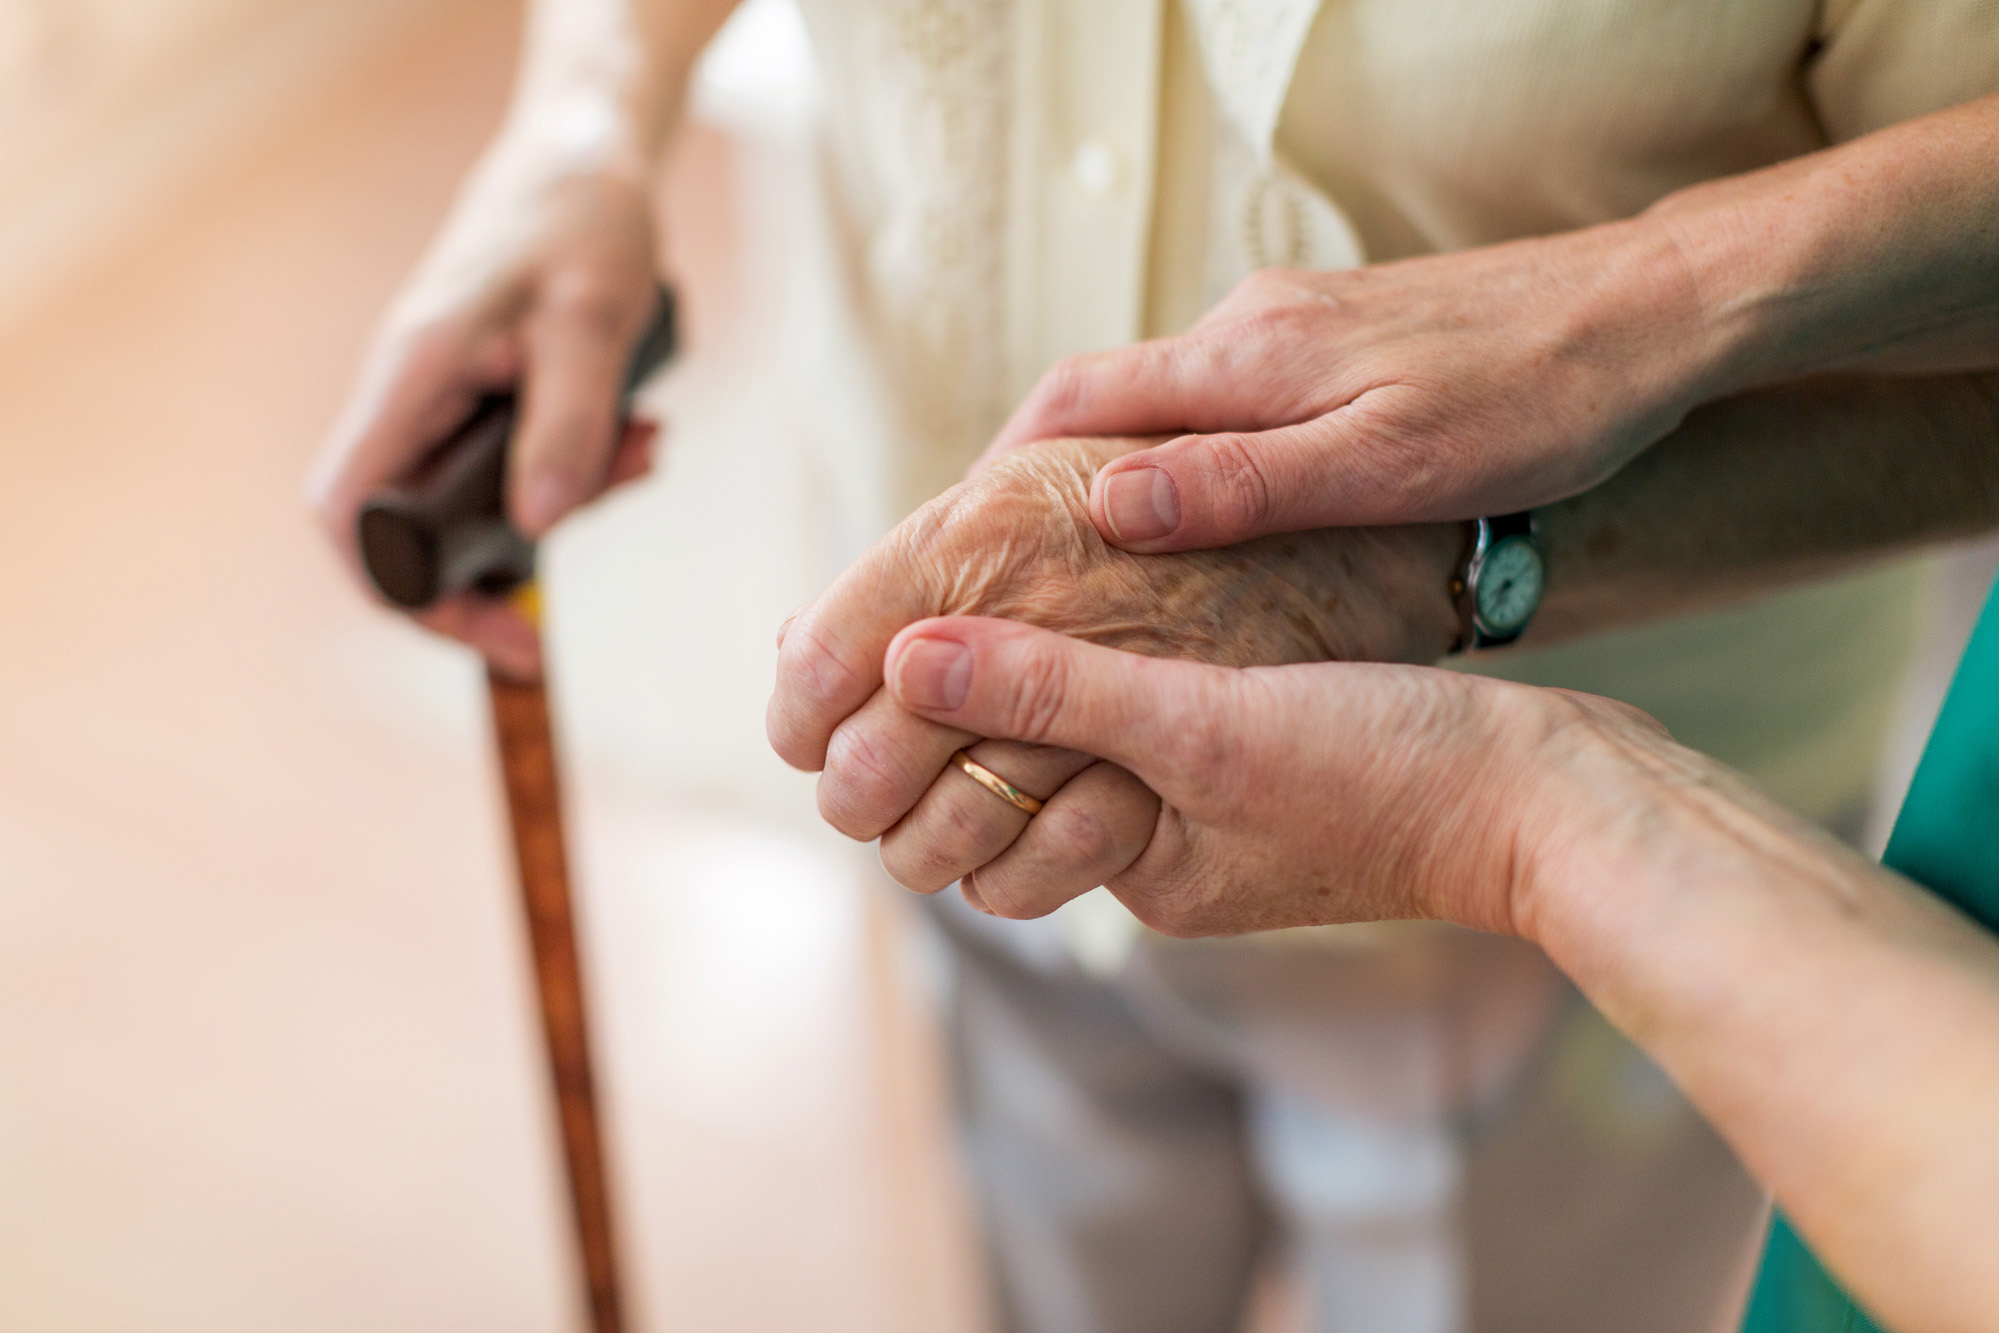 Nurse consoling her elderly patient by holding her hands